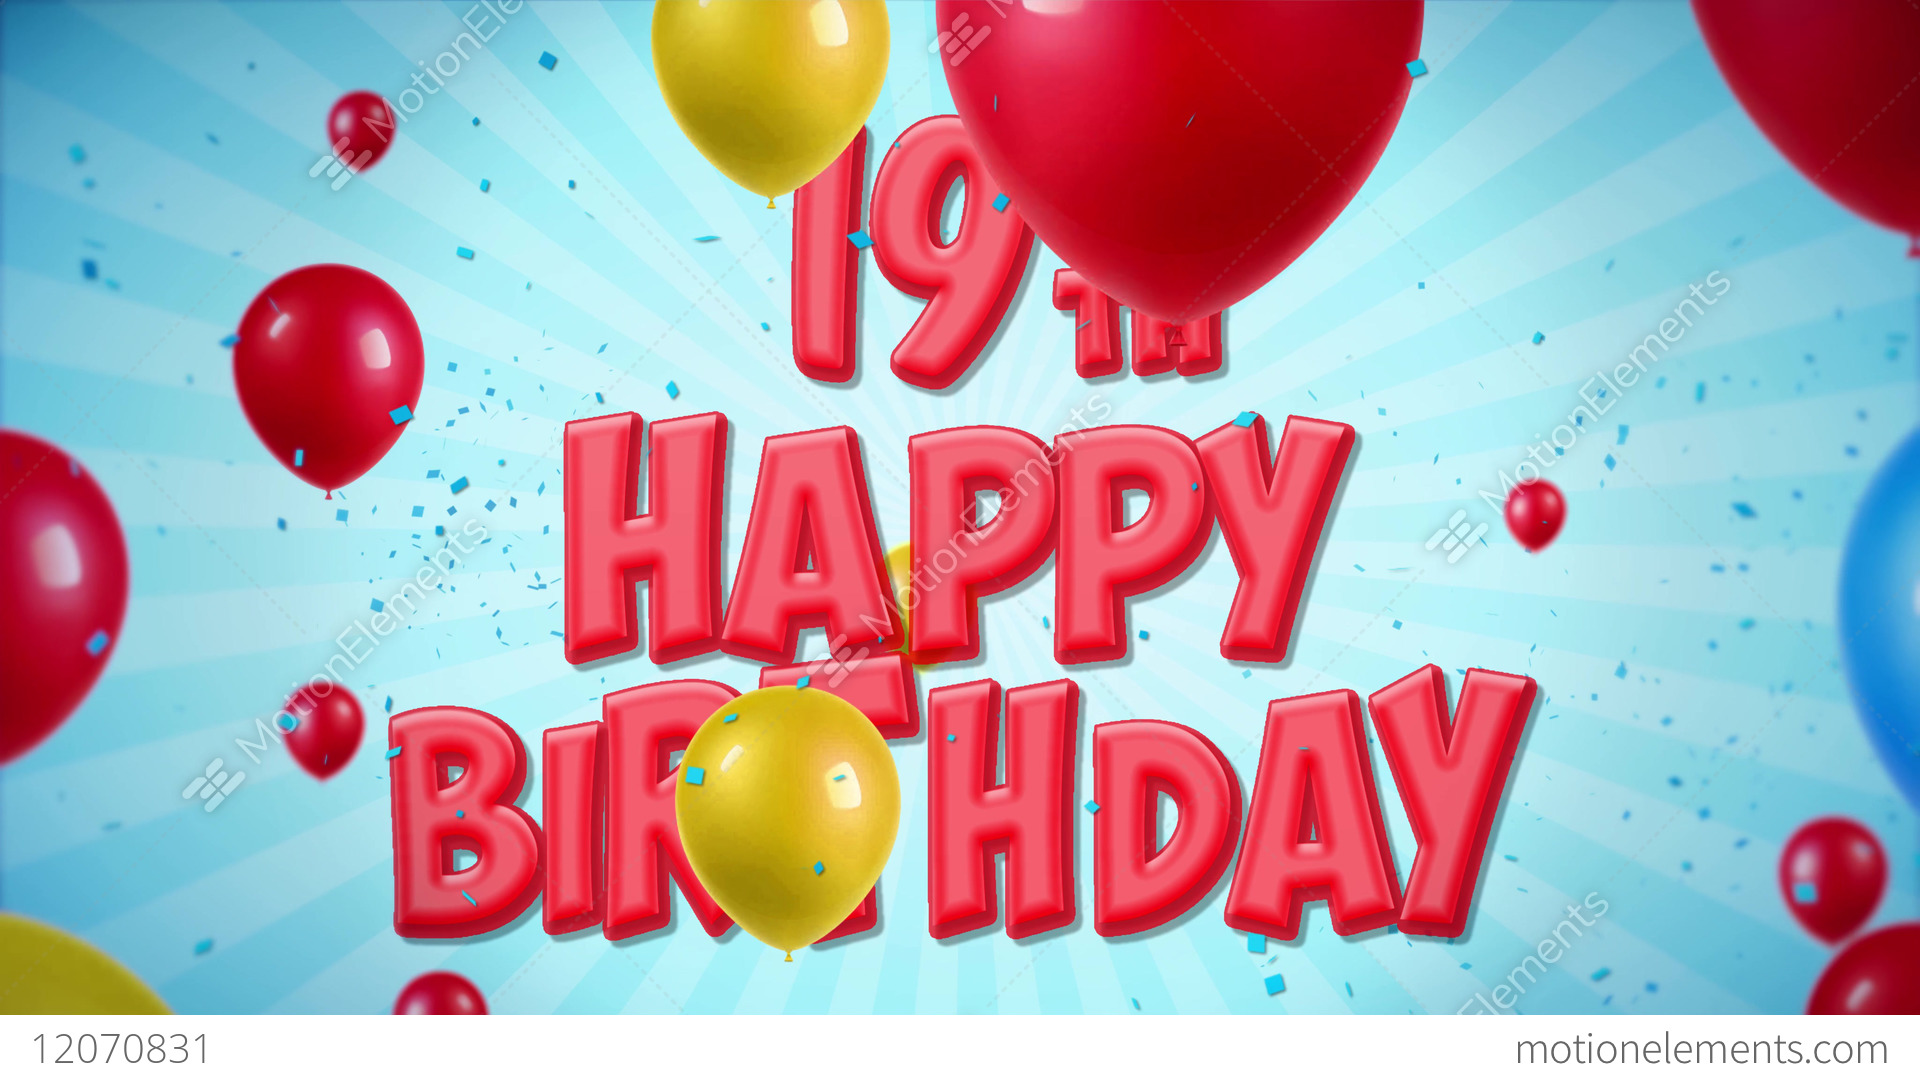 Stock Video Happy Birthday Red Greeting And Wishes With Balloons Confetti Looped Jpg 1920x1080 19th